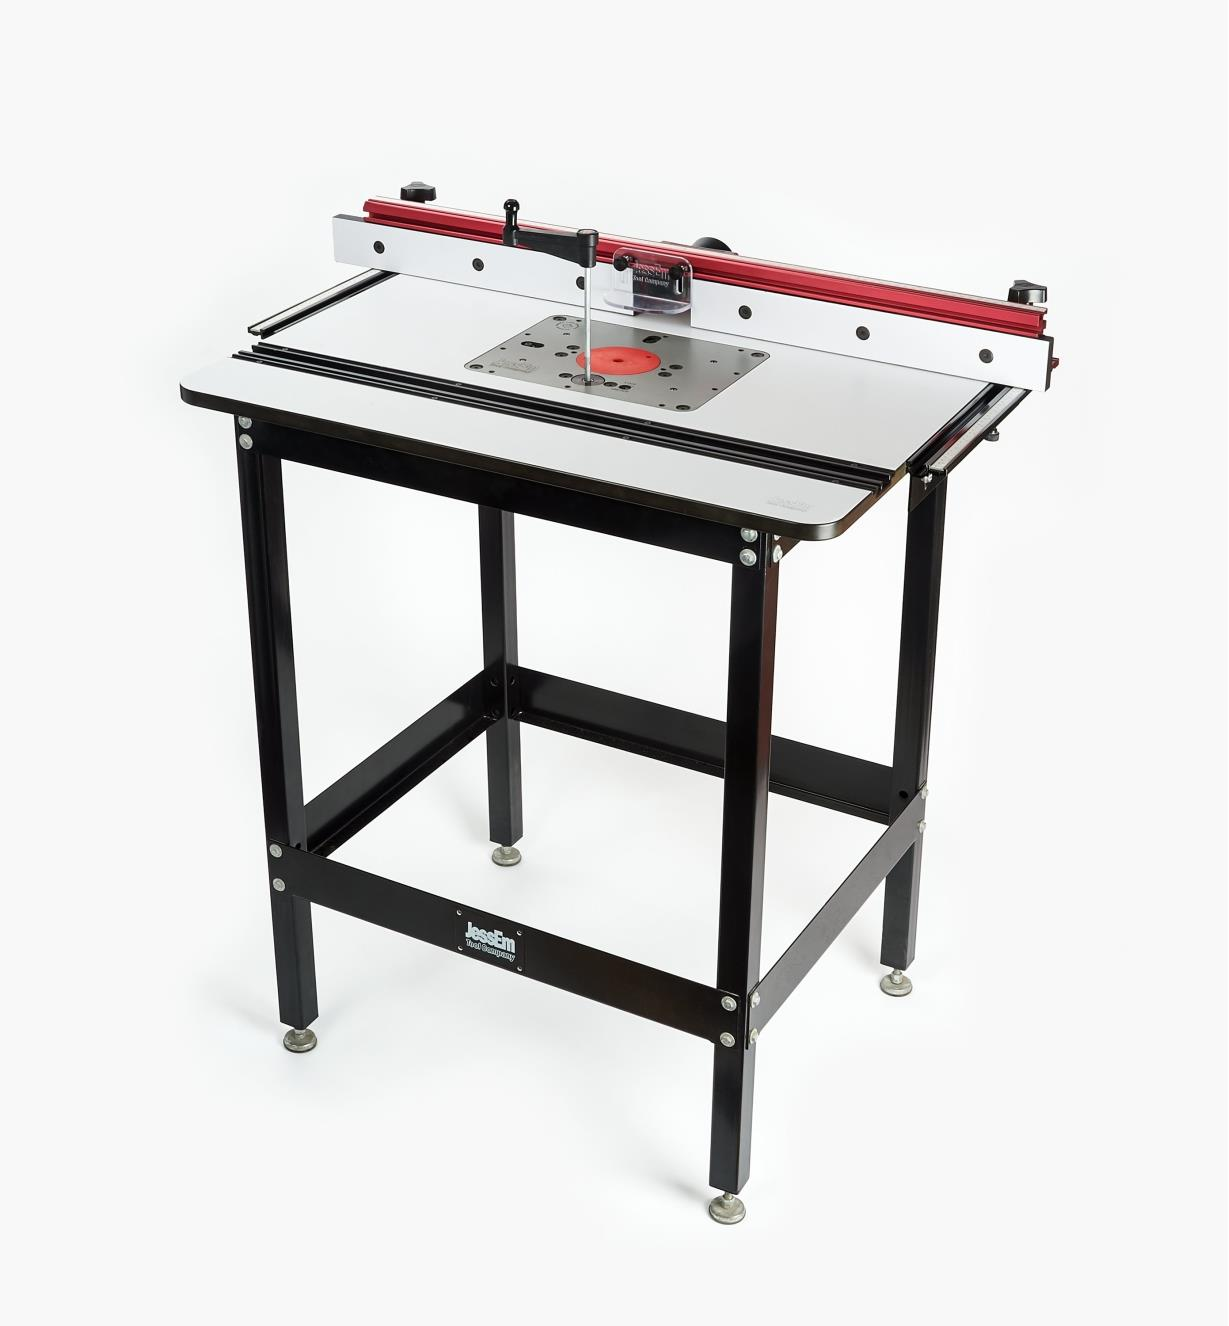 JessEm Rout-R-Lift II with Table Top, Fence & Stand